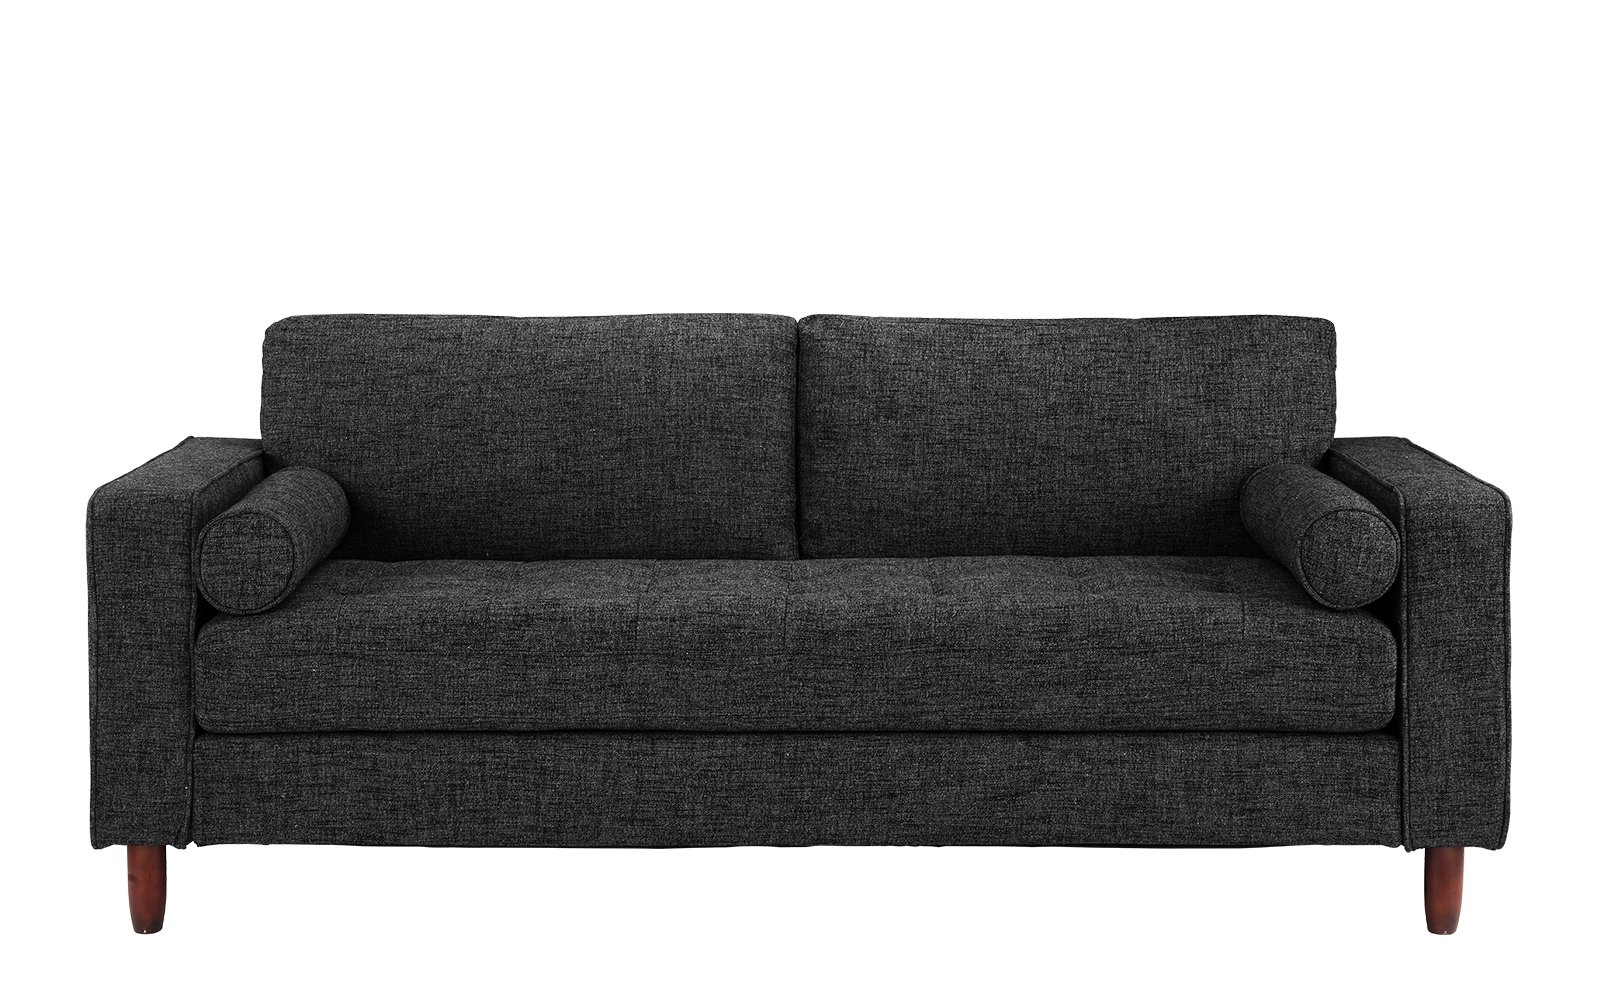 Divano Roma Modern Sofas, Dark Grey - Divano Roma Furniture's upholstered sofa with armrests comes in soft and bright color variances Features hand picked soft and durable linen fabric upholstery with dark brown wooden legs Firmly padded cushions that use high density foam for added comfort - sofas-couches, living-room-furniture, living-room - 81cvwNycLuL -